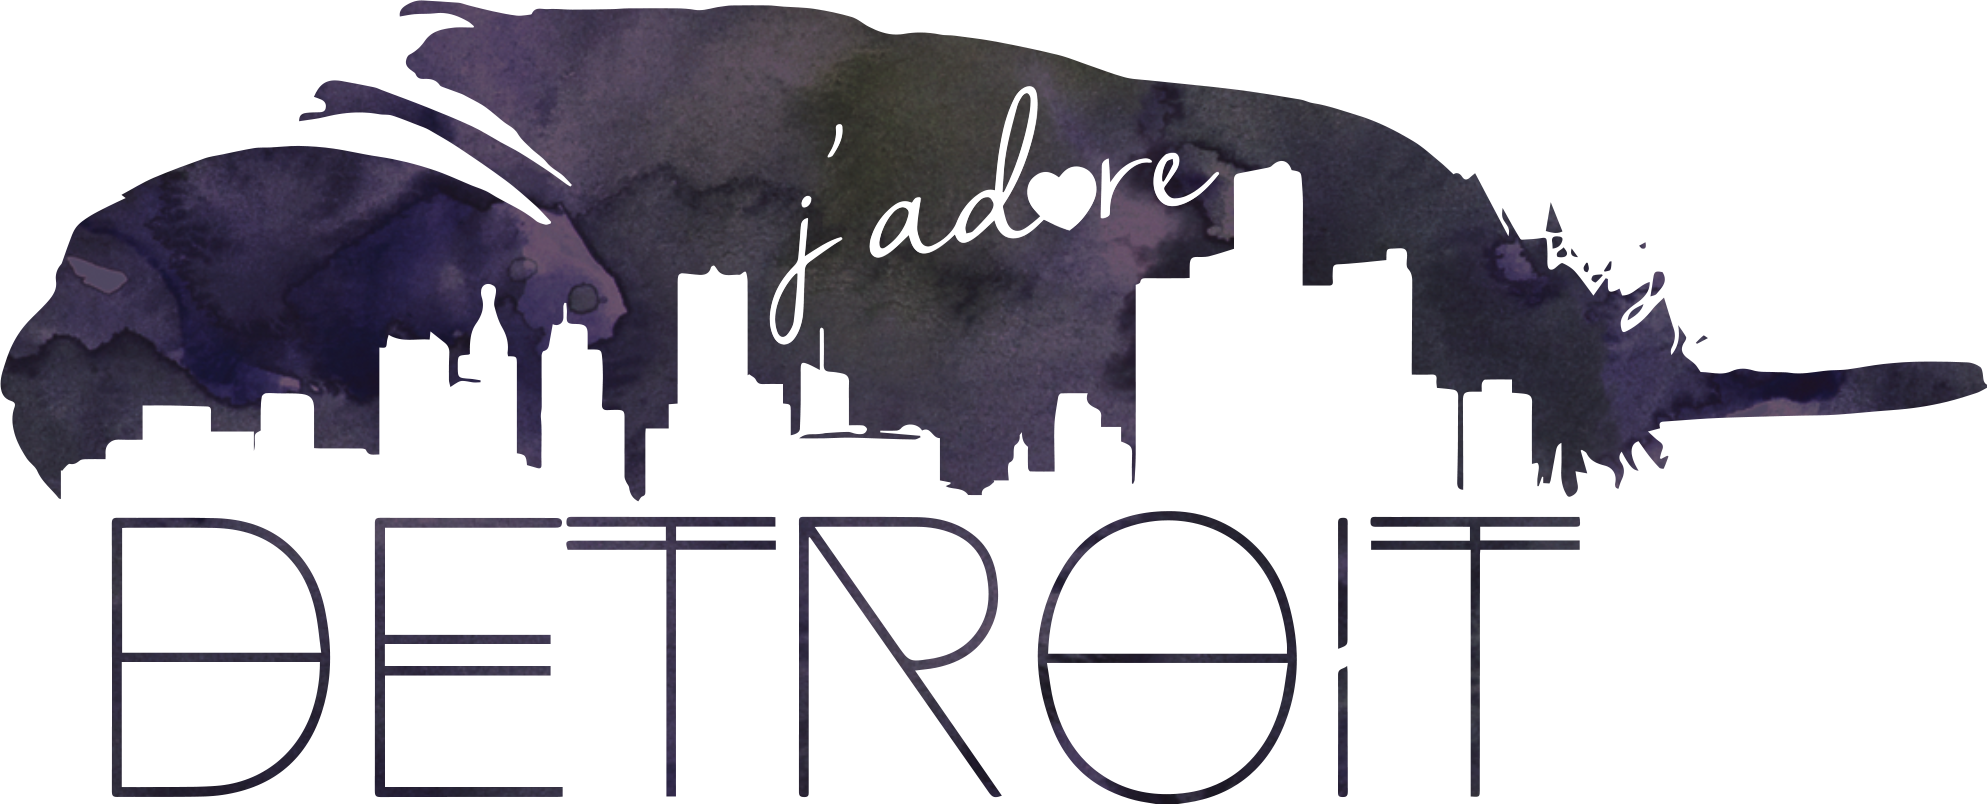 jadore_detroit_secondary_logo_03